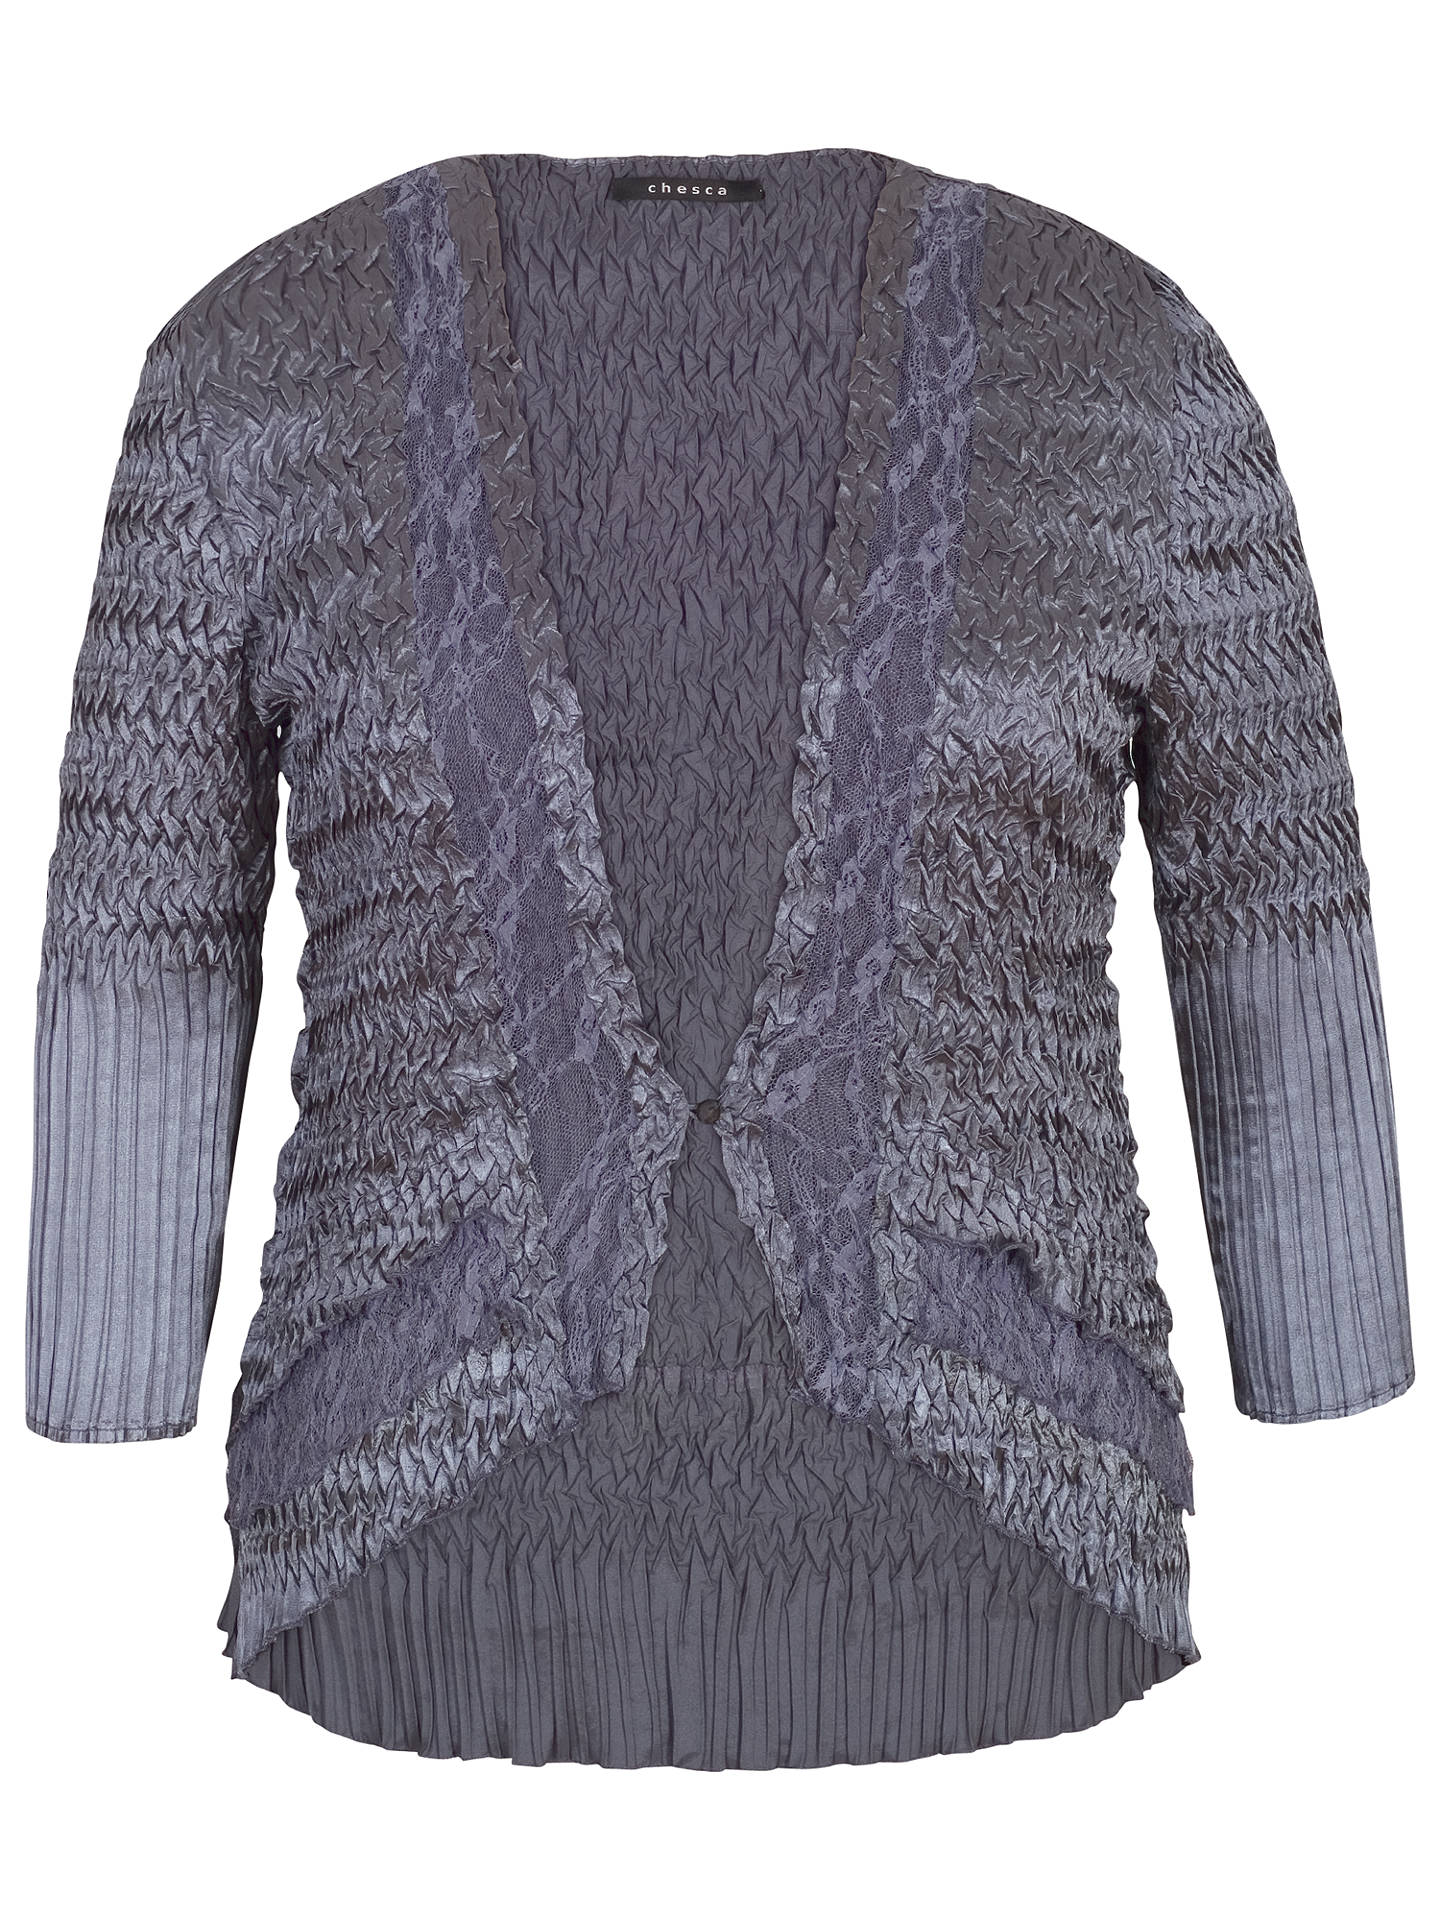 BuyChesca Pleat Lace and Satin Shrug, Steel, 16-18 Online at johnlewis.com